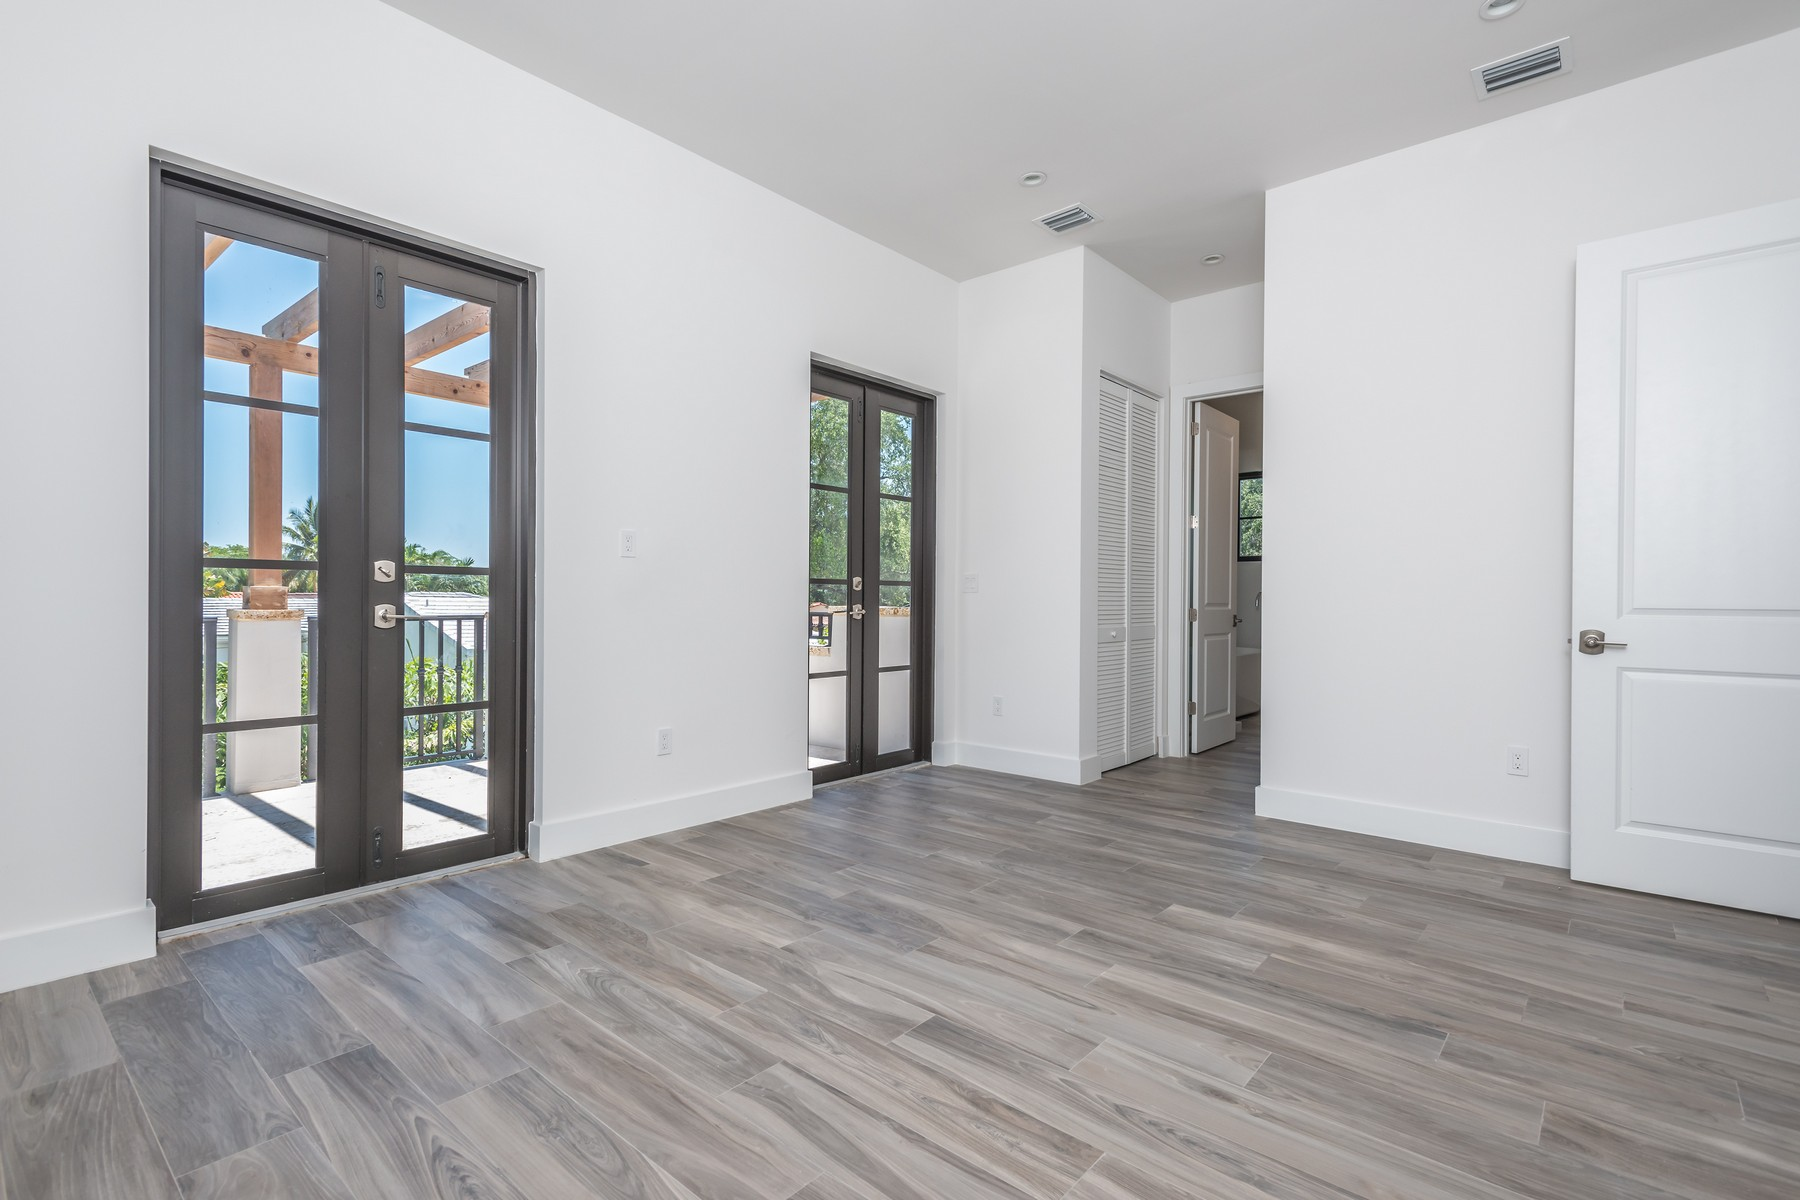 open-houses property at 1310 San Benito Ave